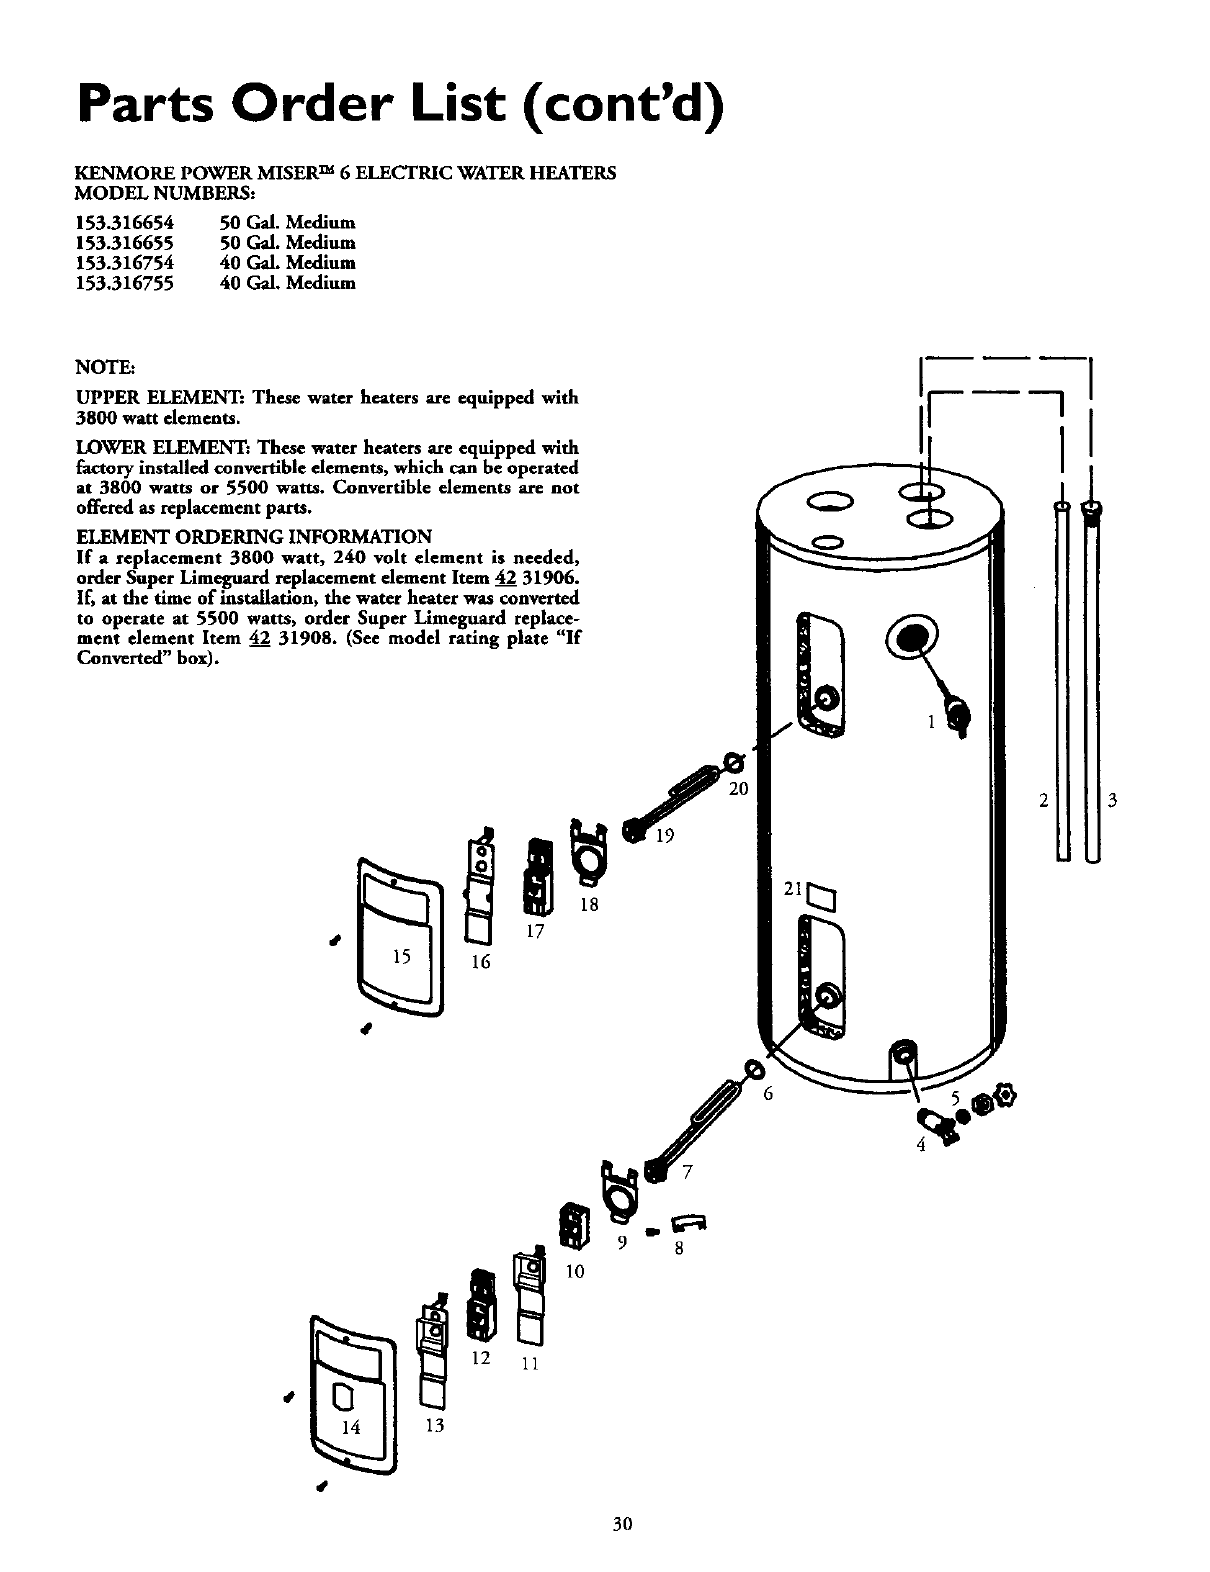 Page 30 of Kenmore Water Heater 153.316754 User Guide